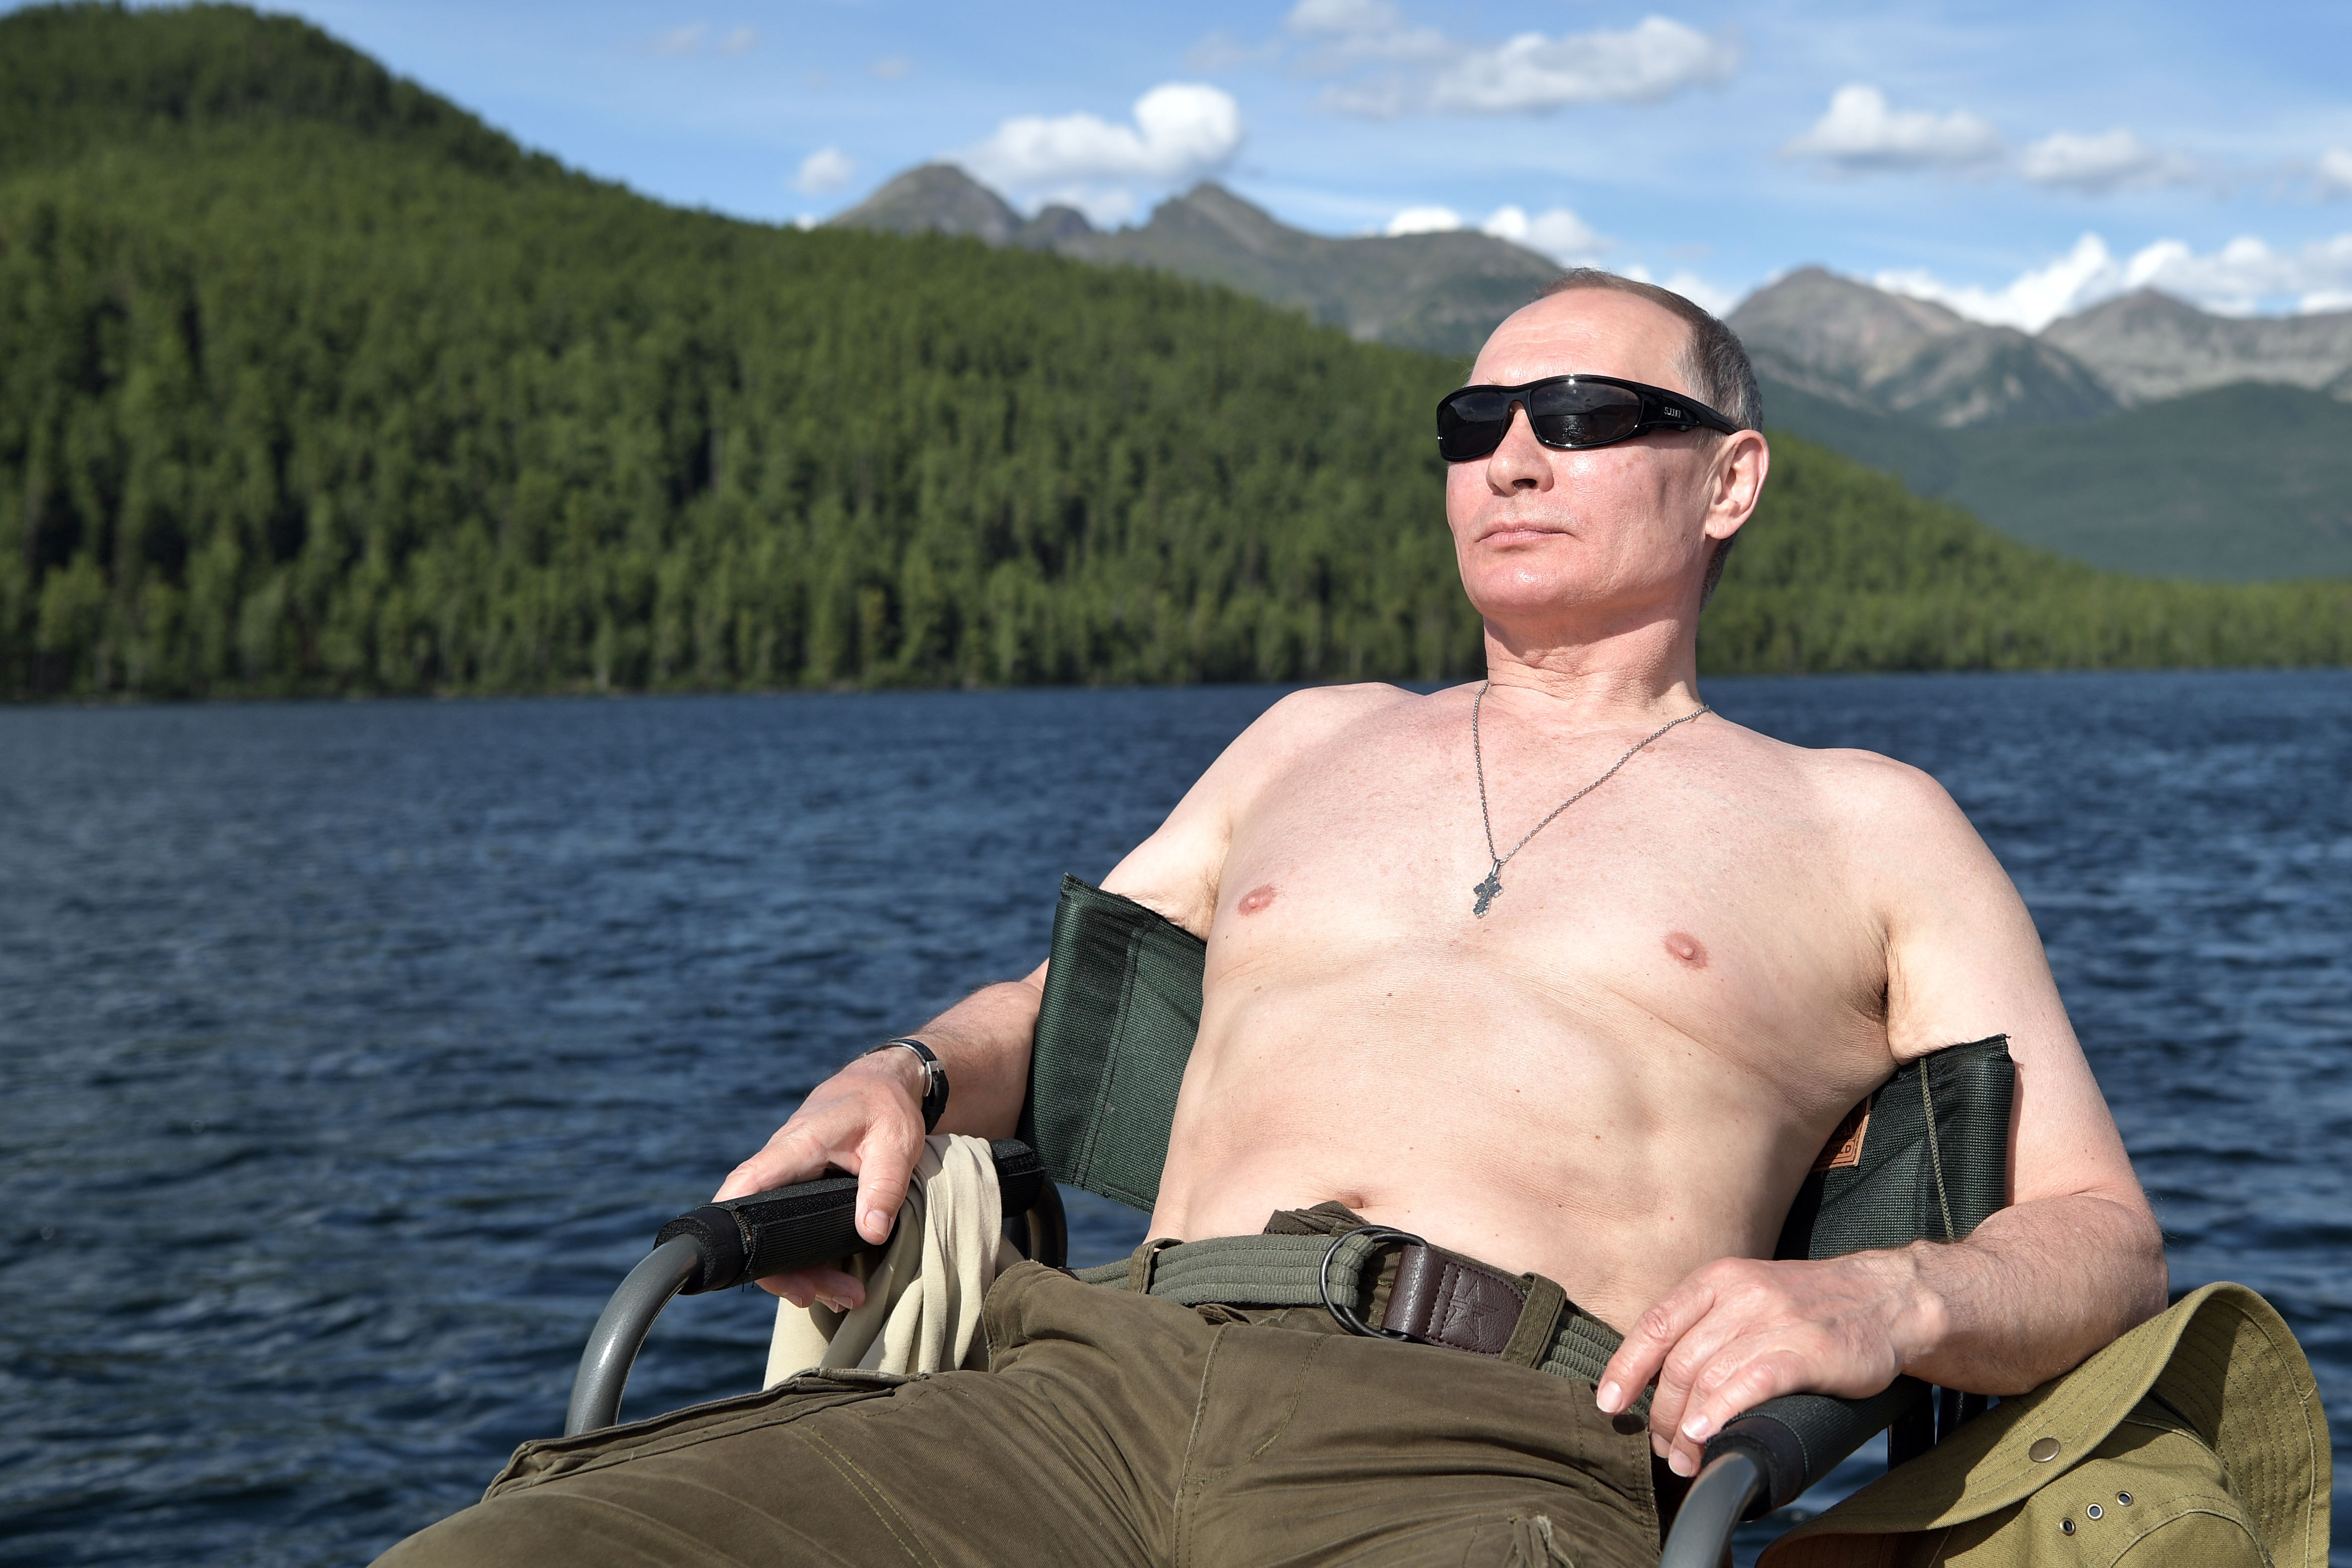 Russian President Vladimir Putin sunbathes during his vacation in the remote Tuva region in Siberia, August 1 - 3, 2017. (Alexey Nikolsky/AFP/Getty Images)